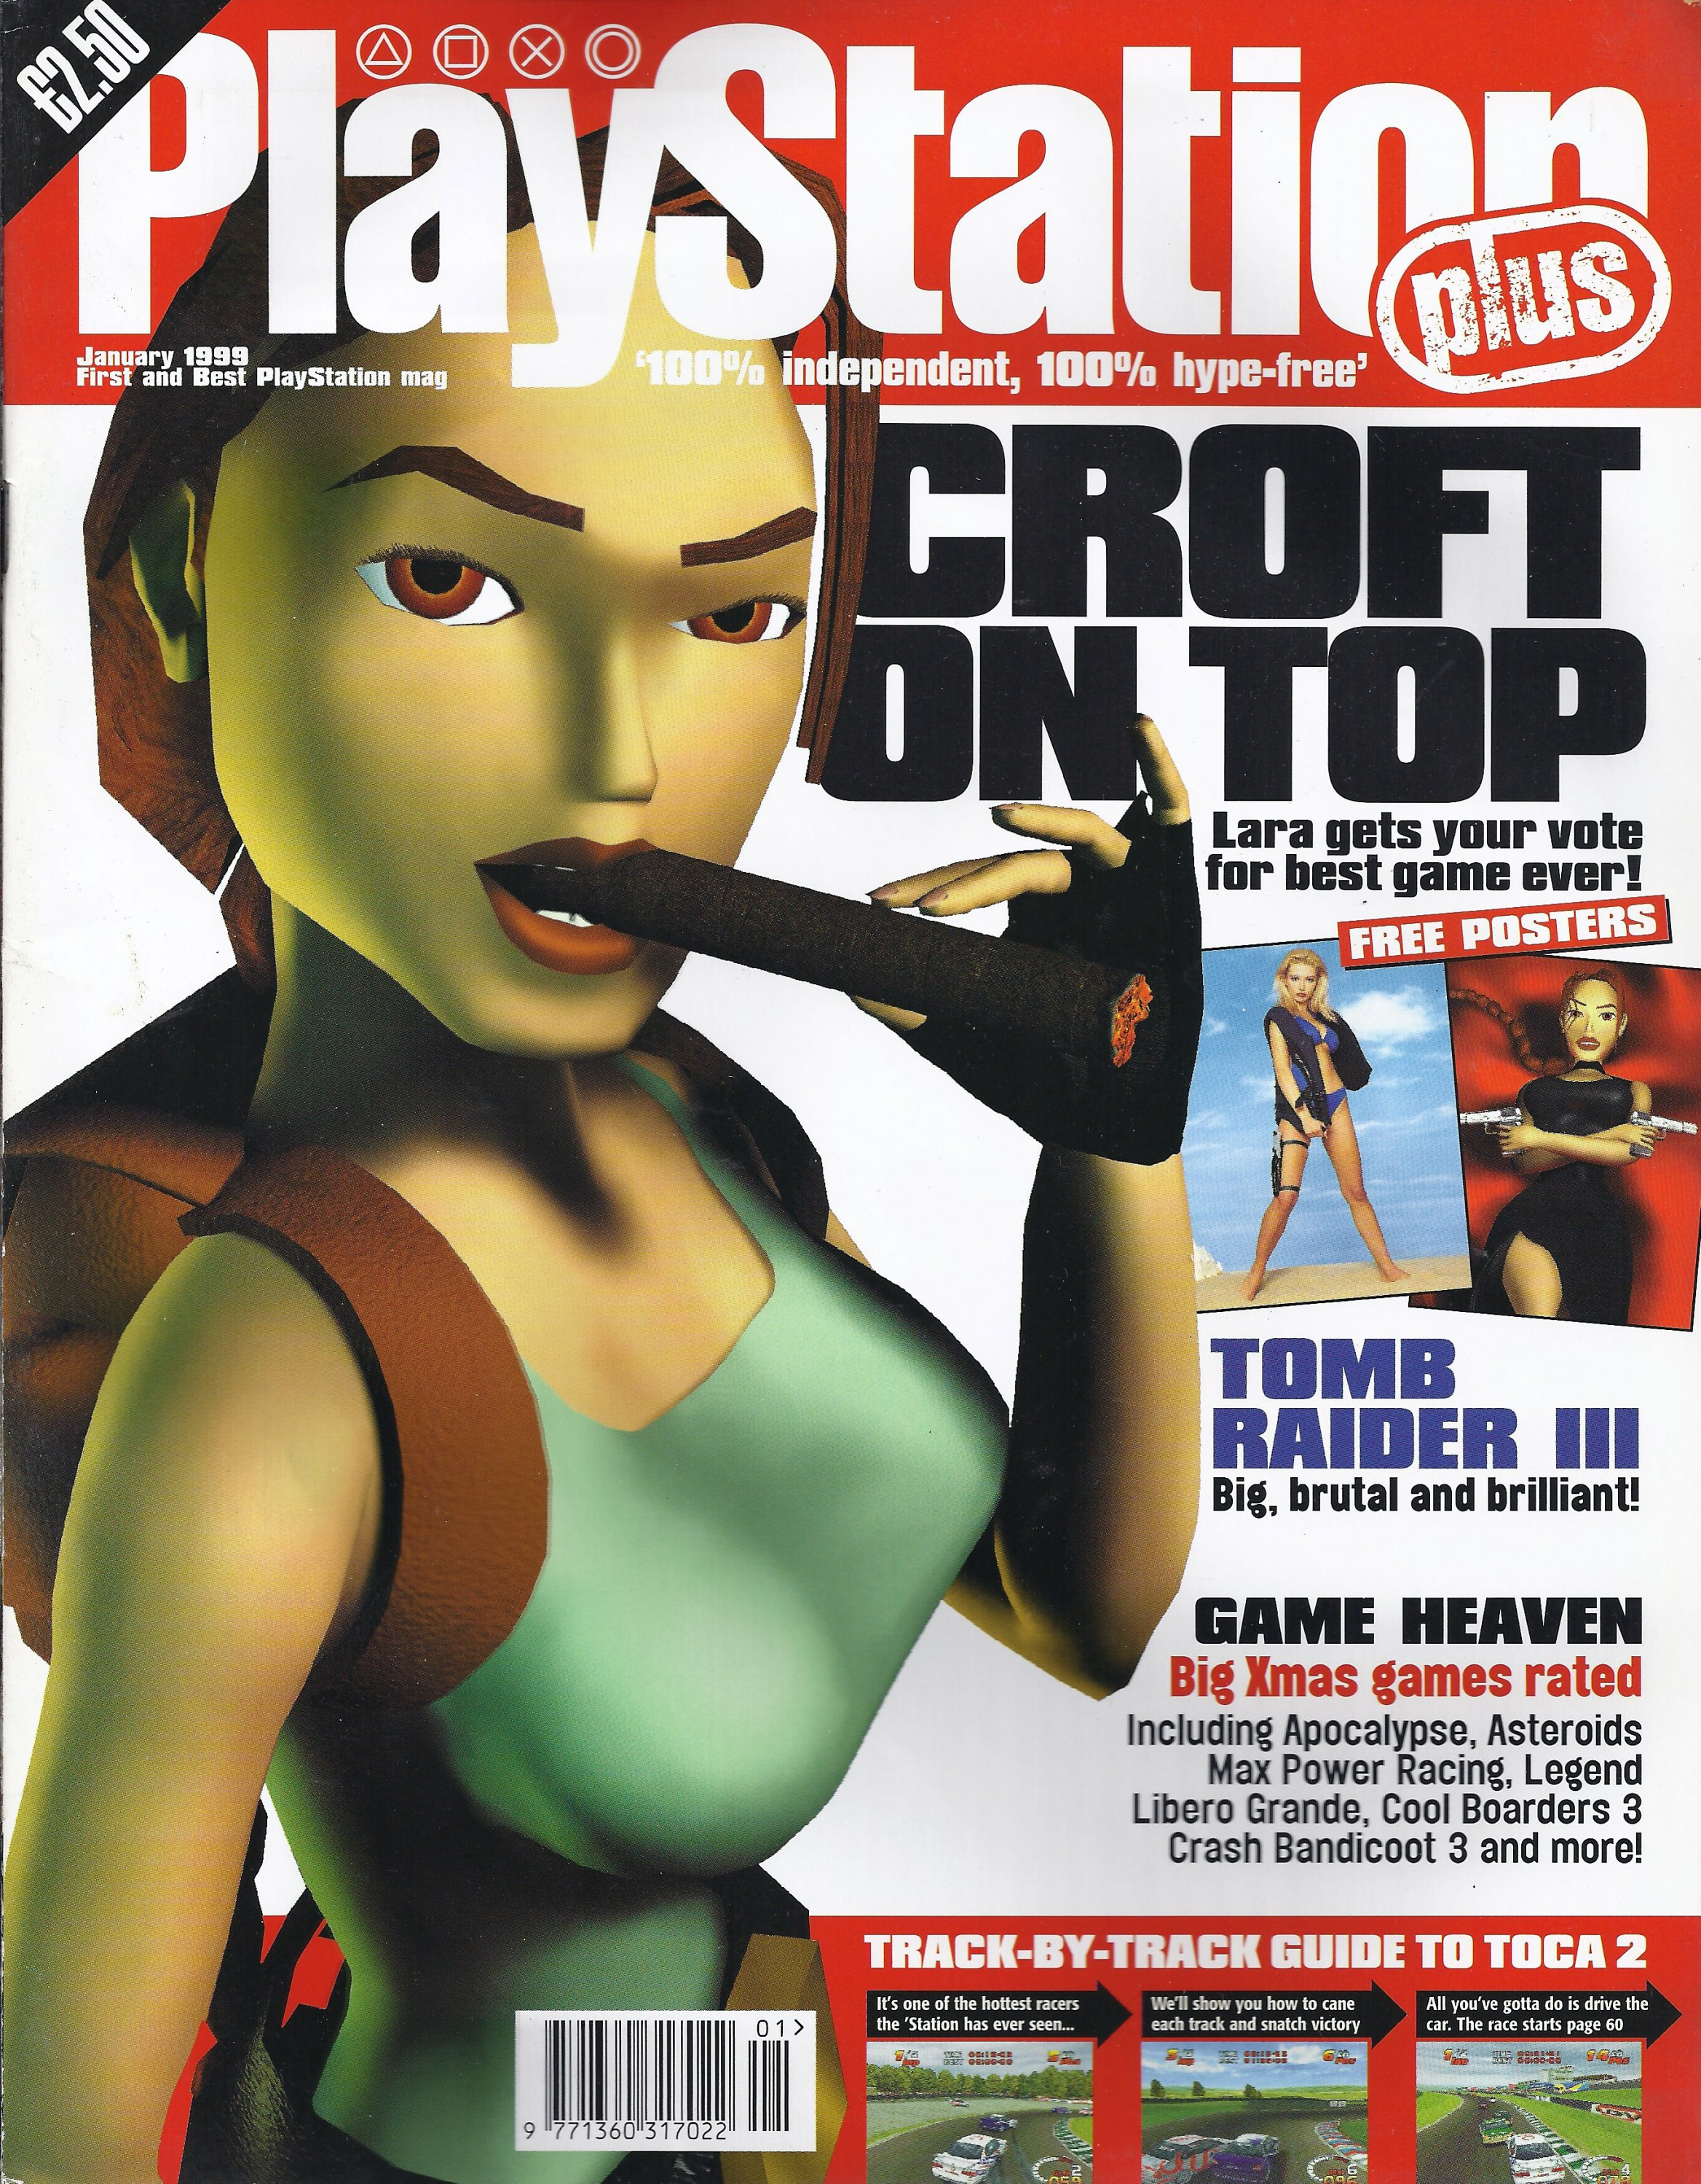 Playstation Plus Issue 040 (January 1999)